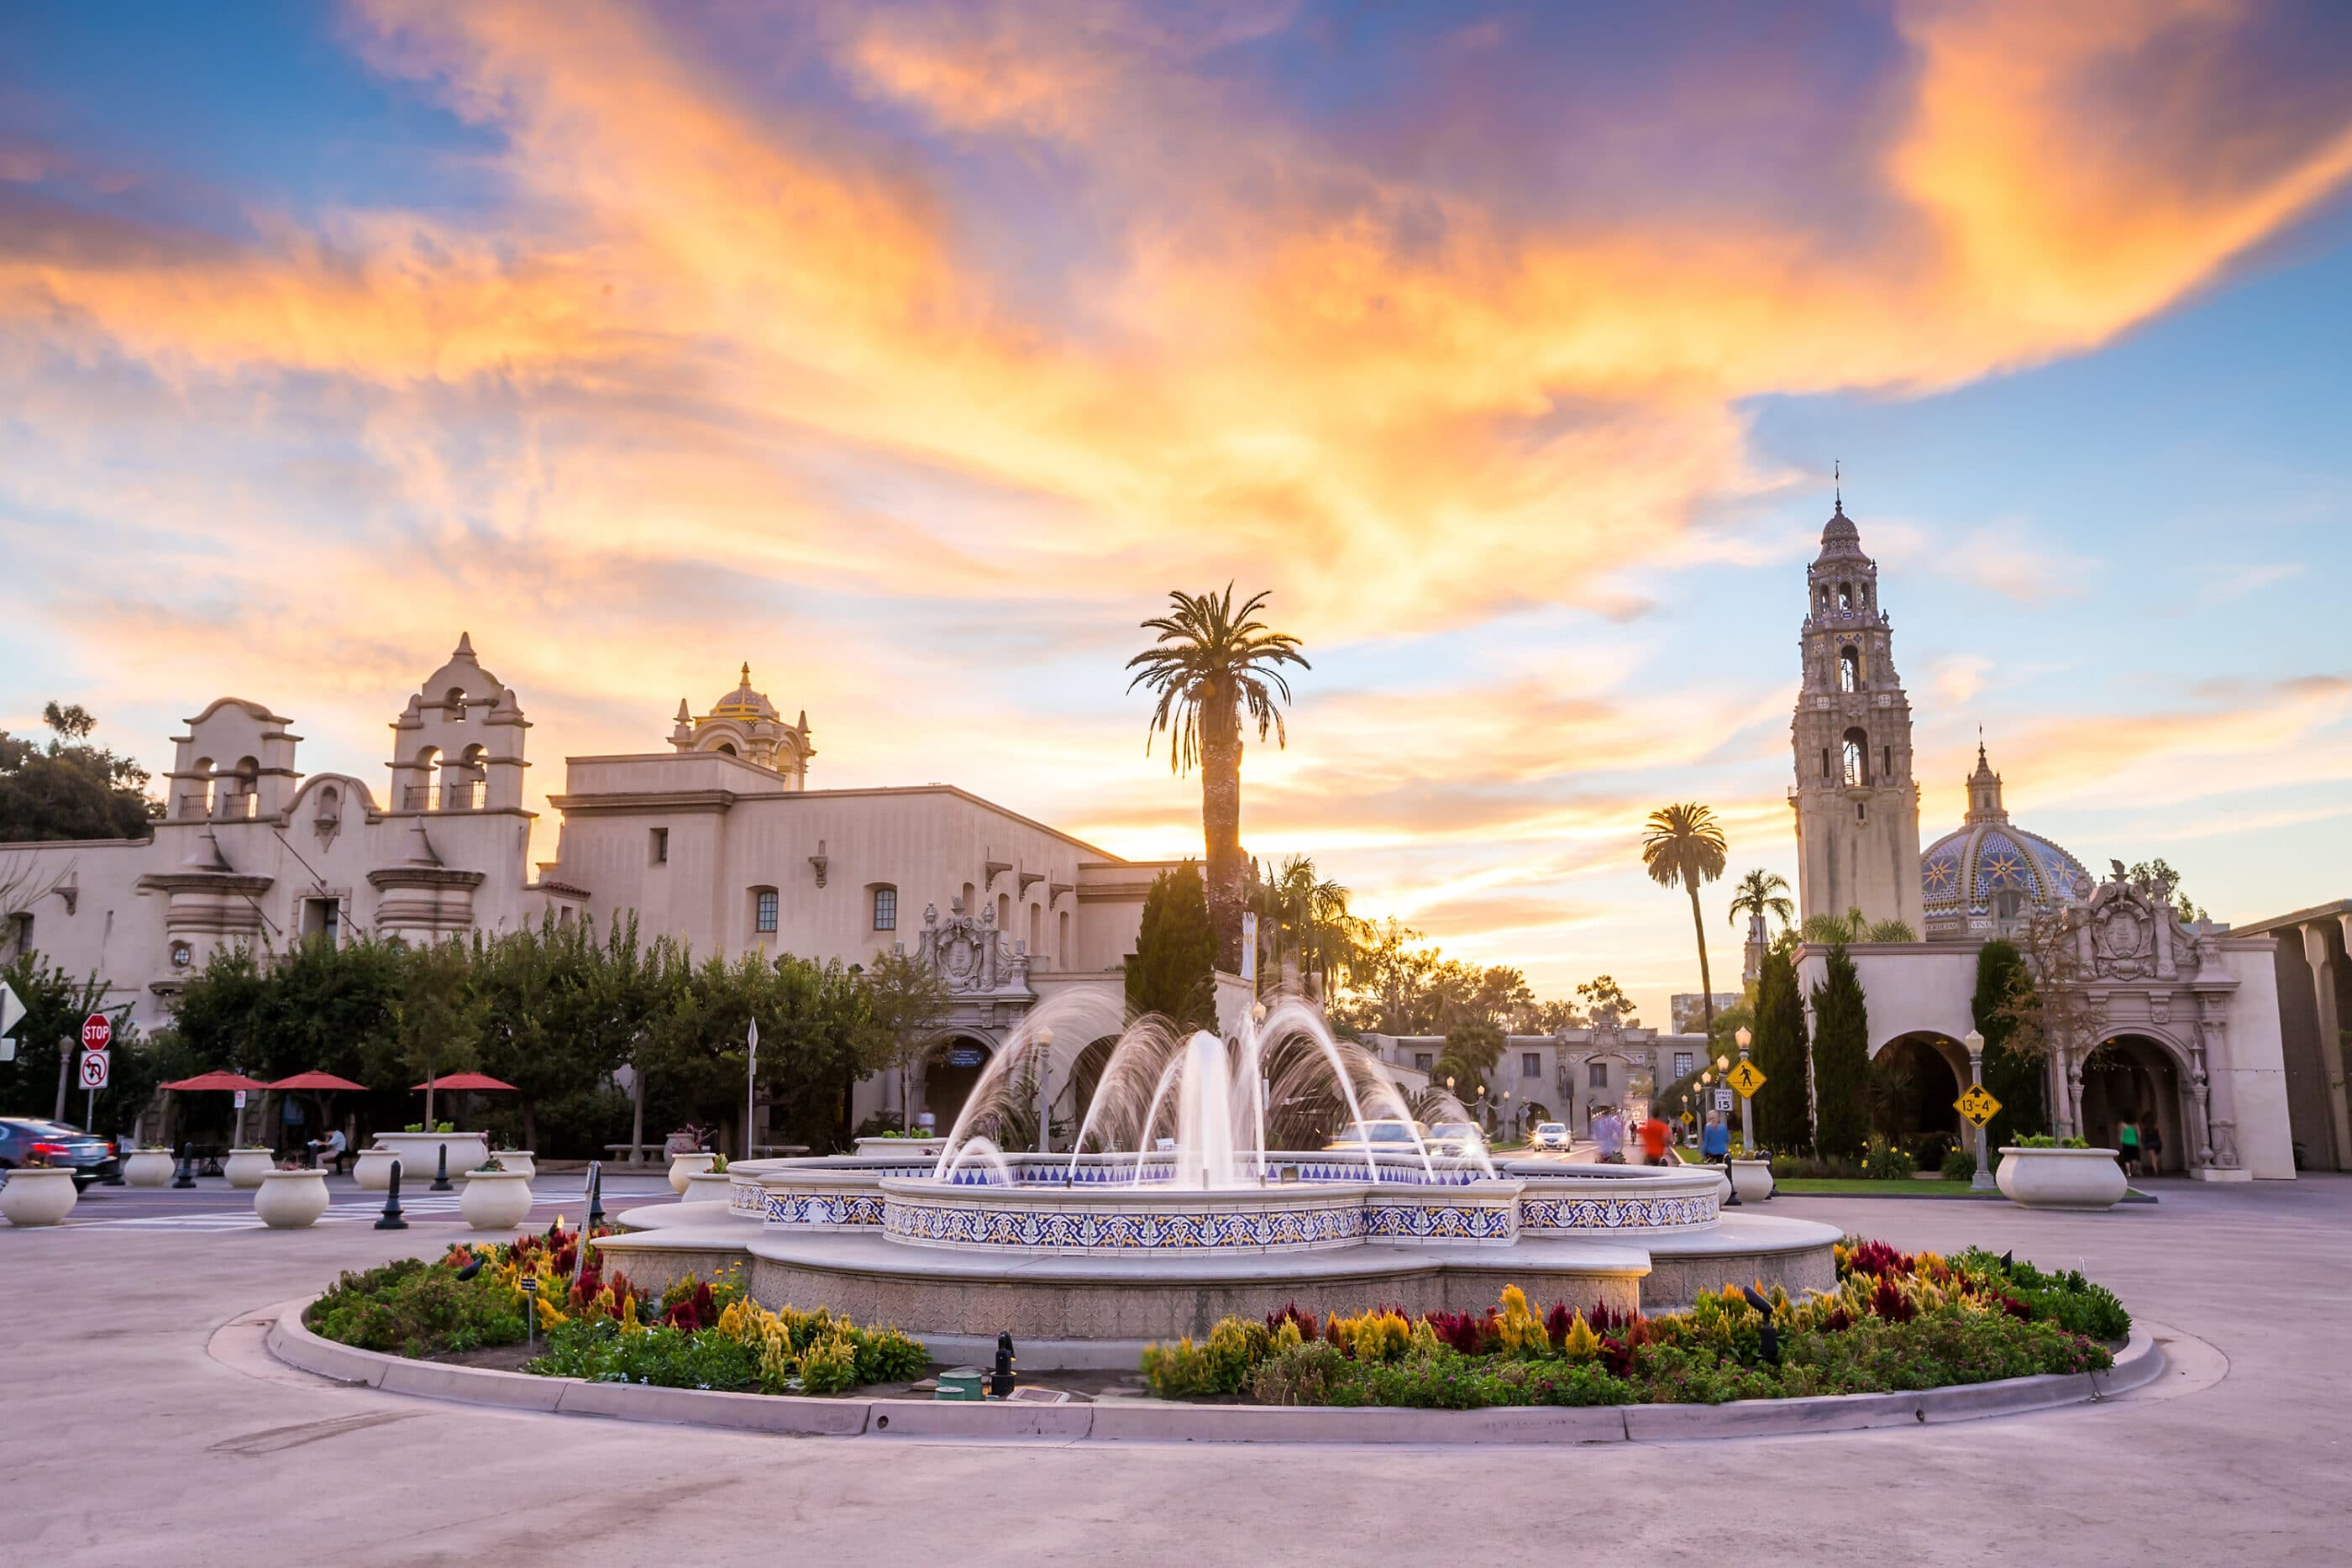 A local travel expert why these best San Diego tourist attractions from scenic places to museums are worthy of your sightseeing itinerary.